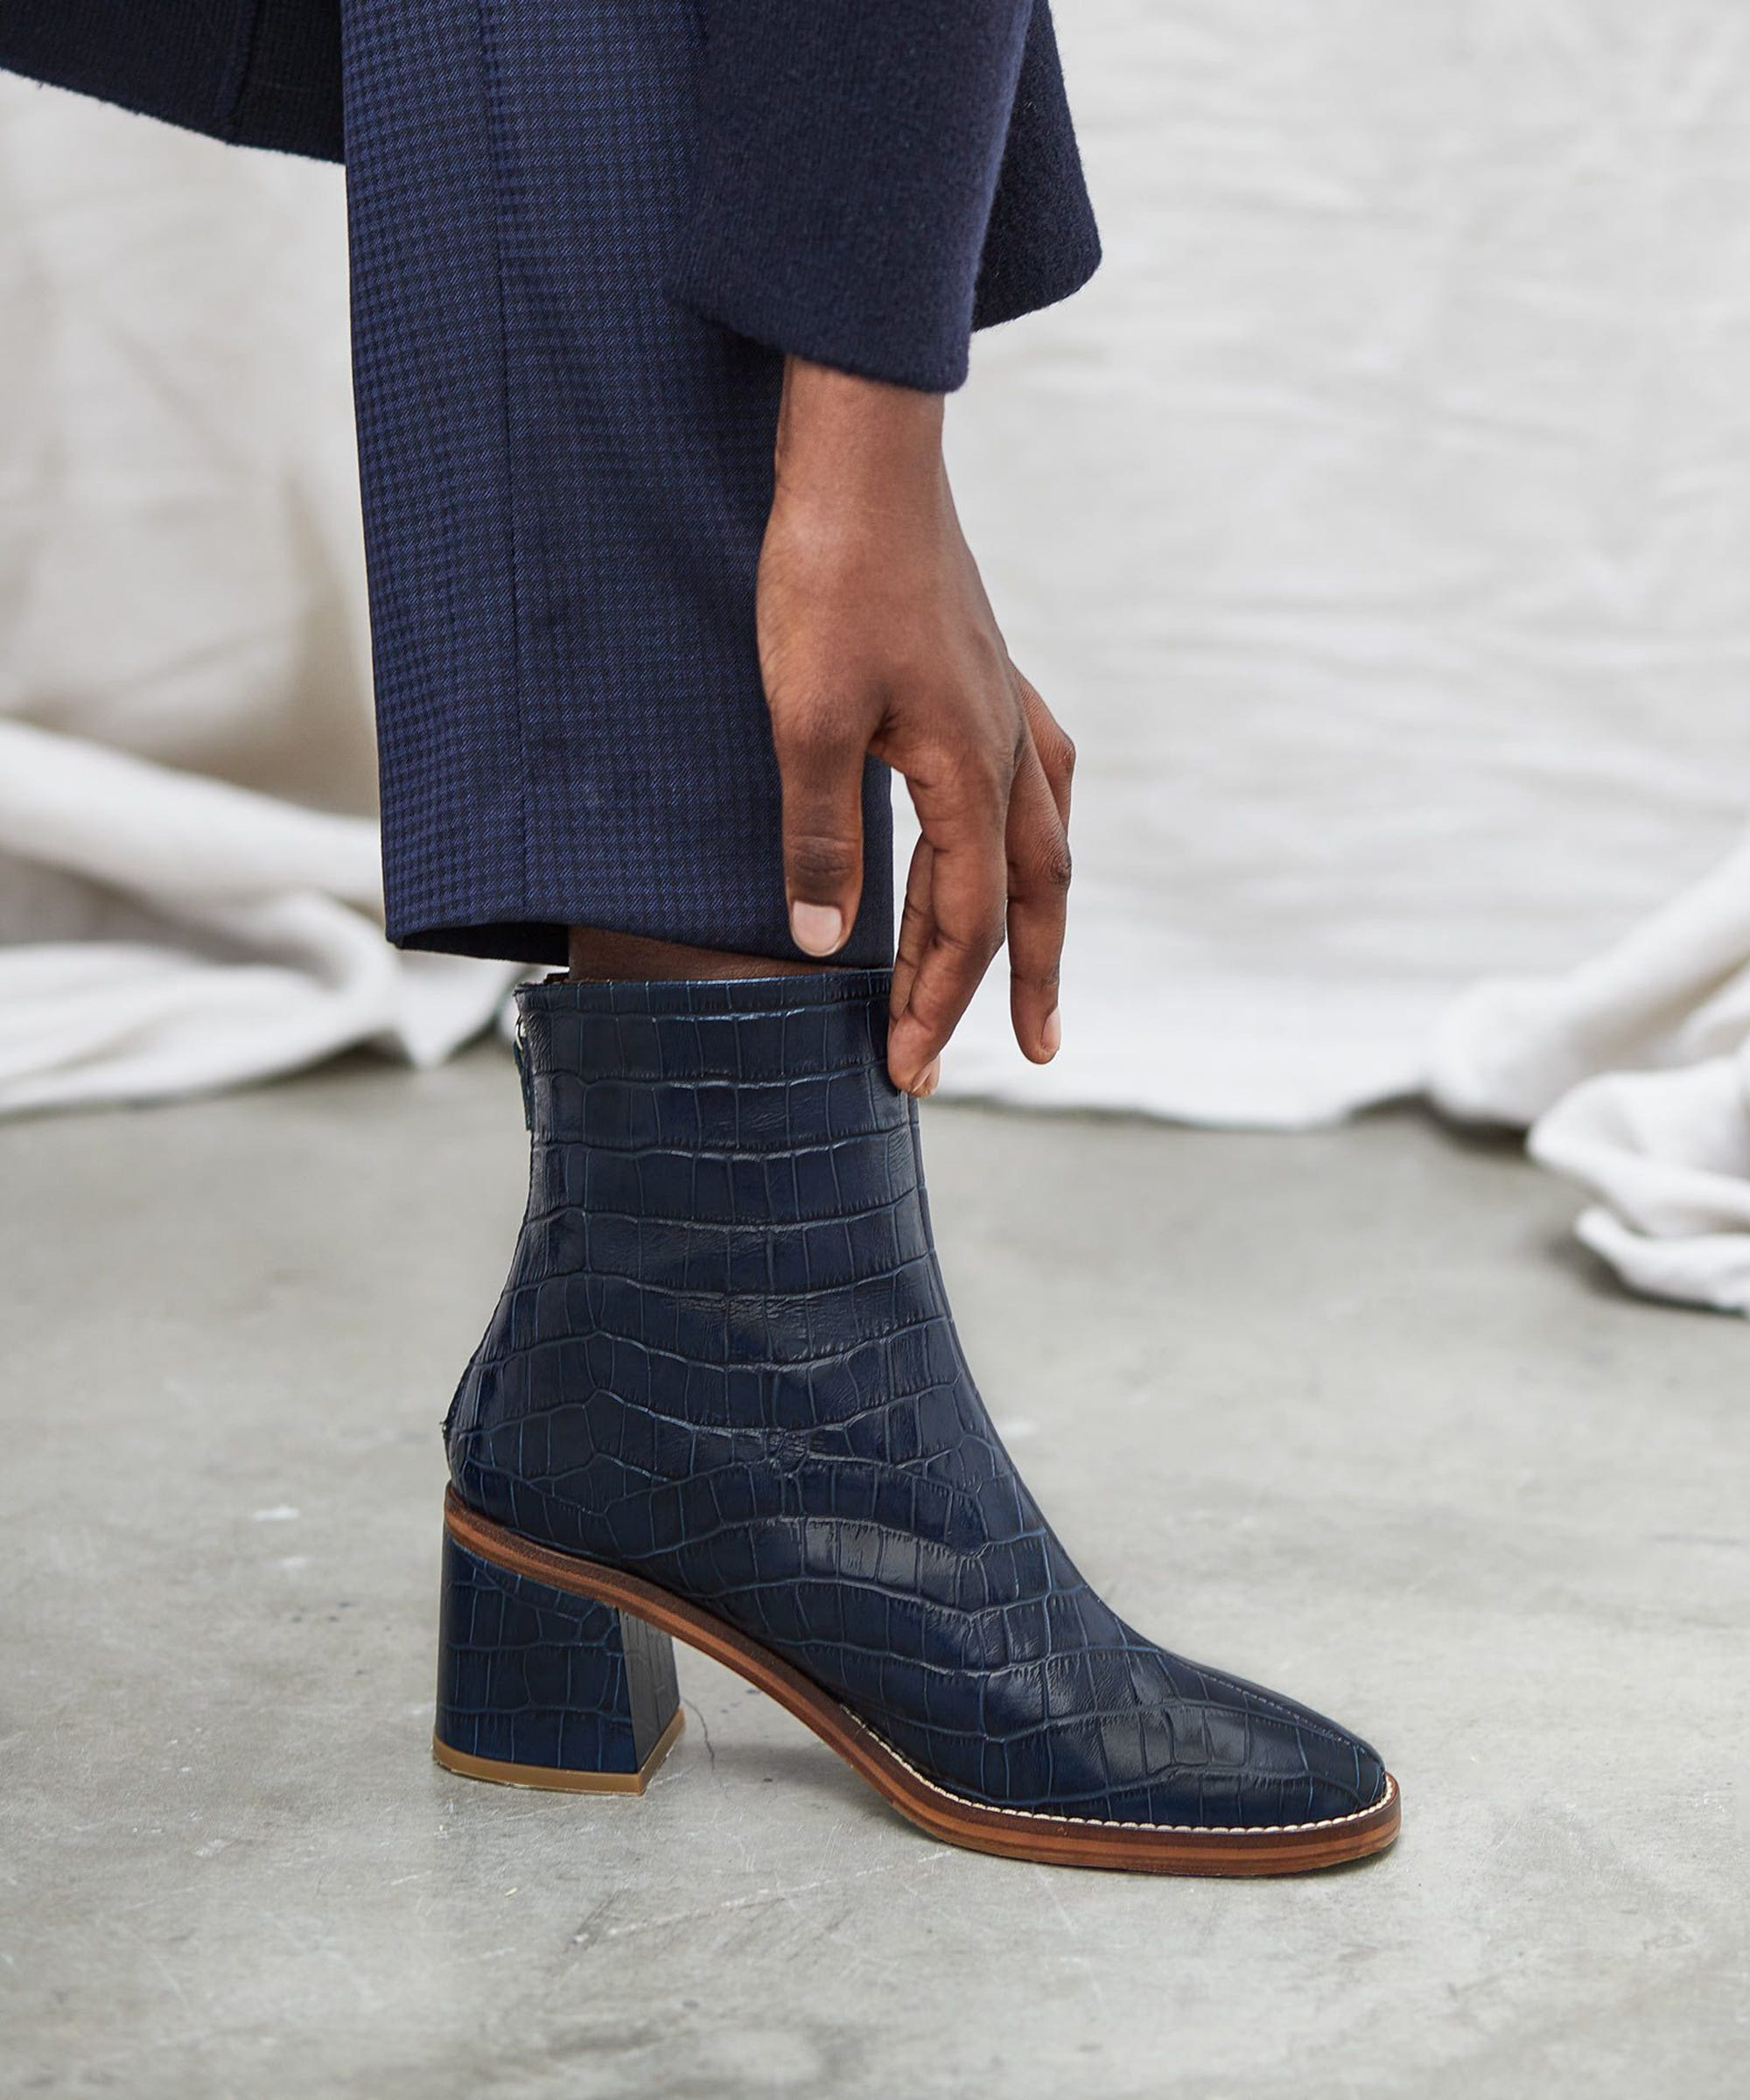 Best Ankle Boots For Women UK 2019